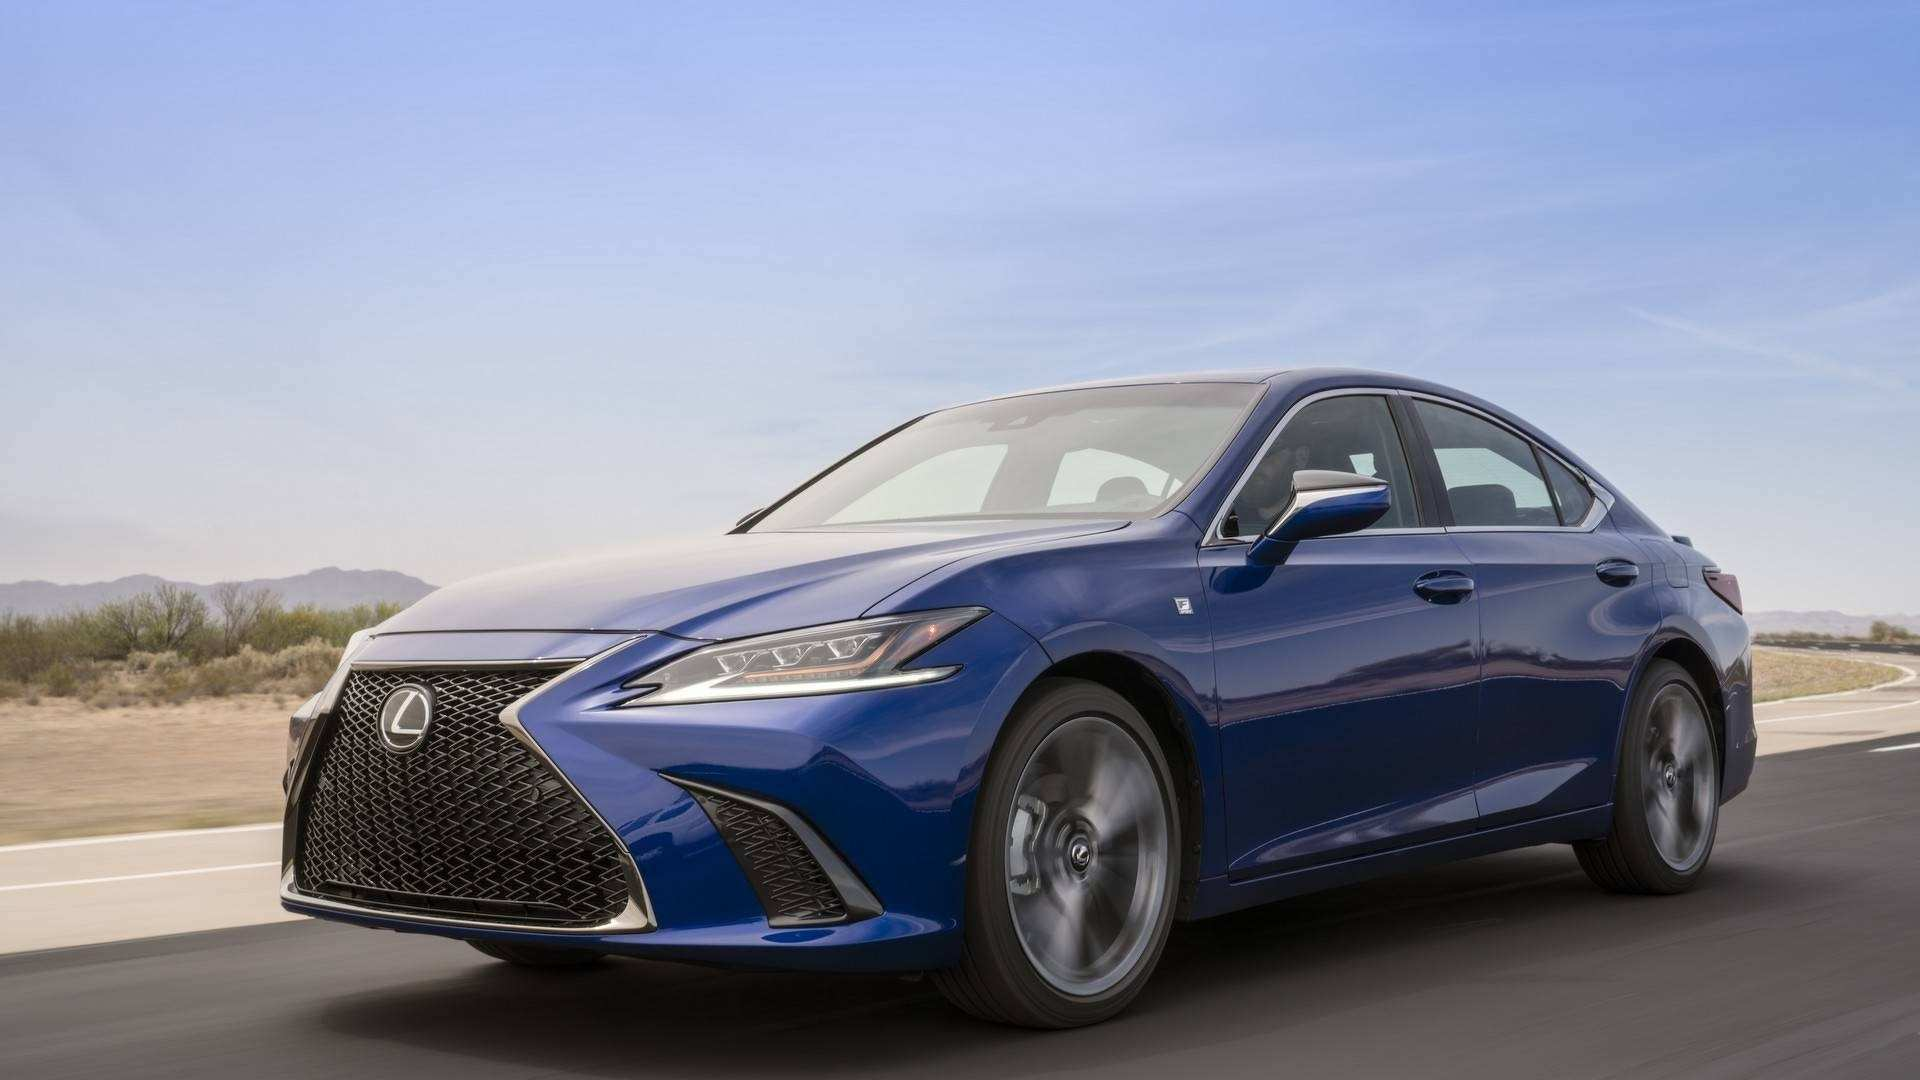 49 A When Lexus 2019 Come Out Release Date And Concept